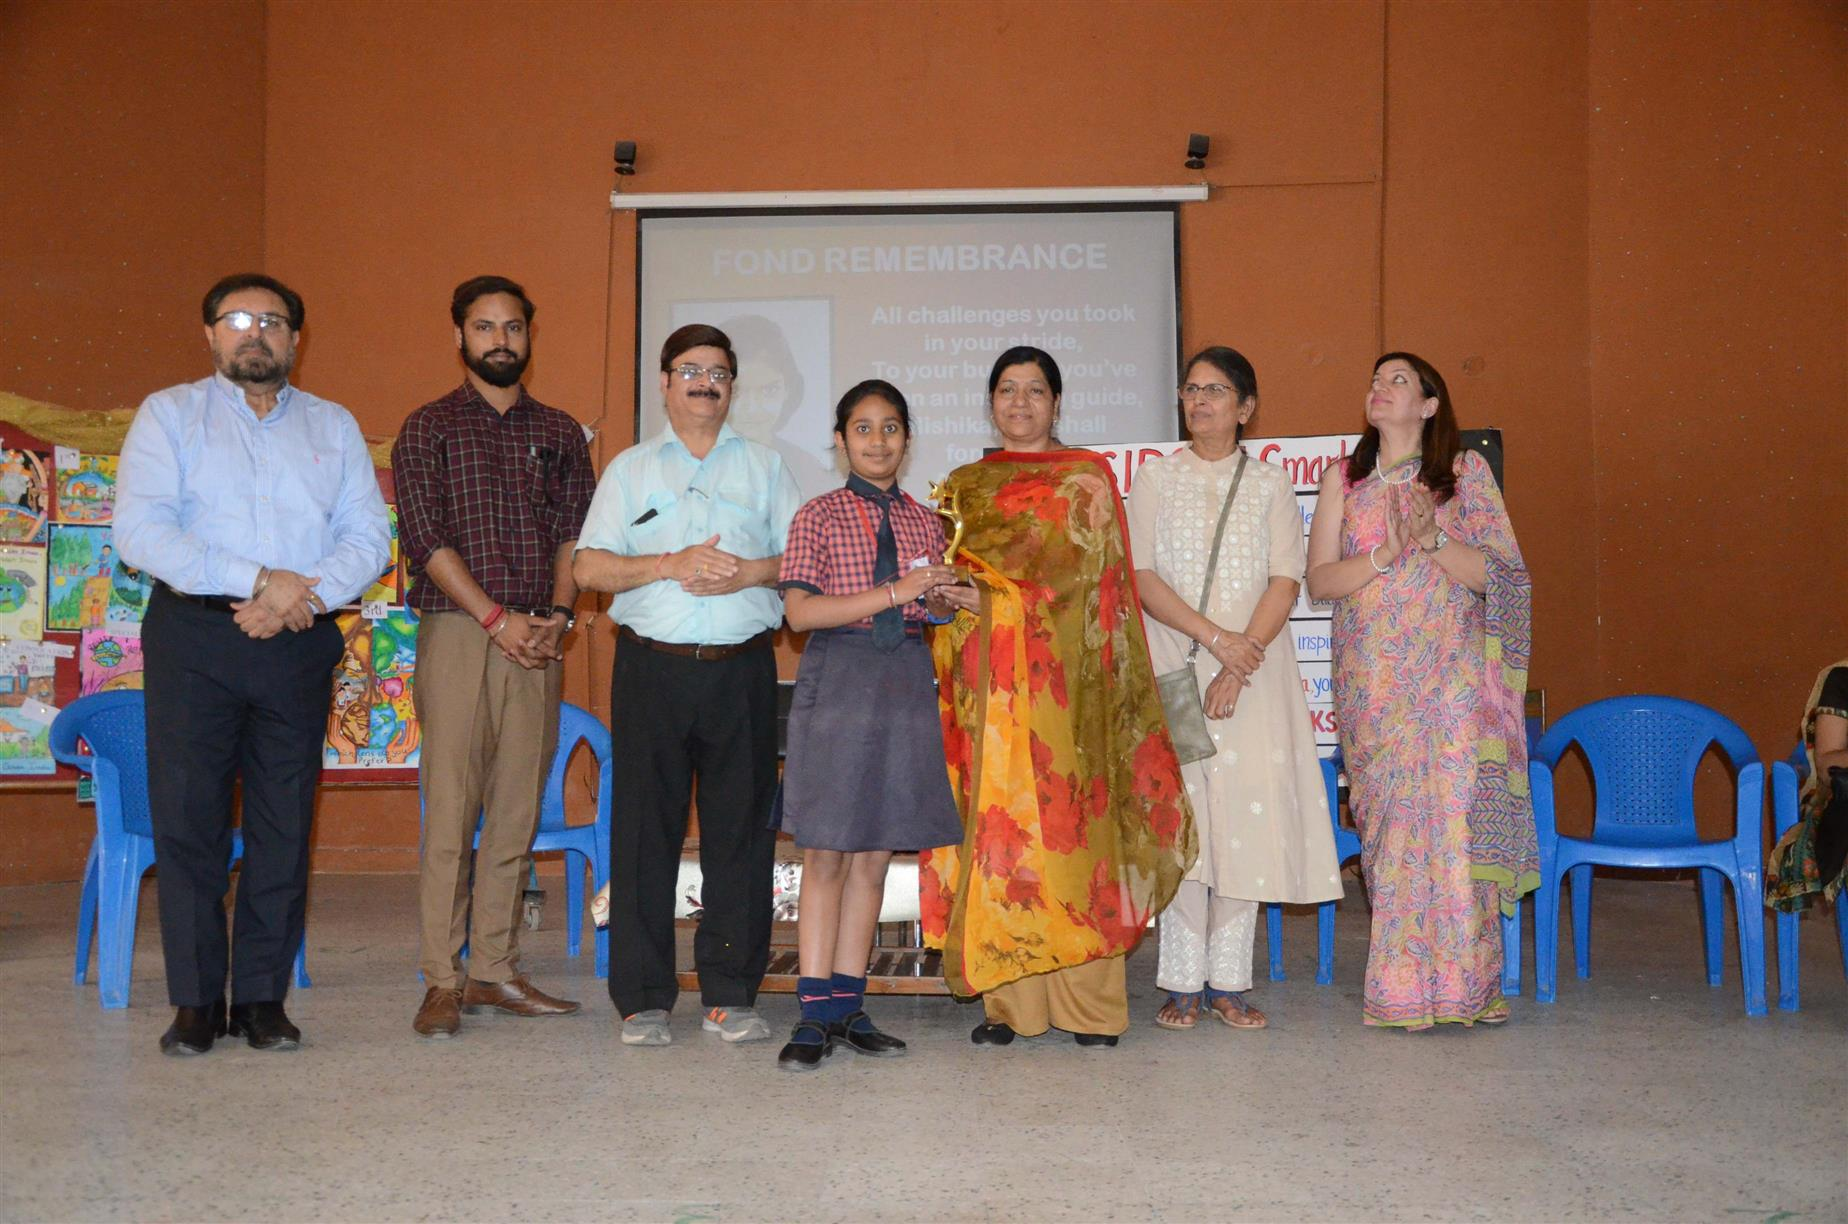 AKSIPS 41 Smart School organized   'Green Friends-Interschool On- The- Spot Poster Making Competition' on May 6, 2019 to commemorate the birthday of their Whiz kid, Miss Mishika, a brilliant student and gifted artist who passed away recently at the young age of 12. Her parents Mrs.& Mr. Ravinder Kumar sponsored this event for encouraging the young budding artists. | AKSIPS 41 Chandigarh